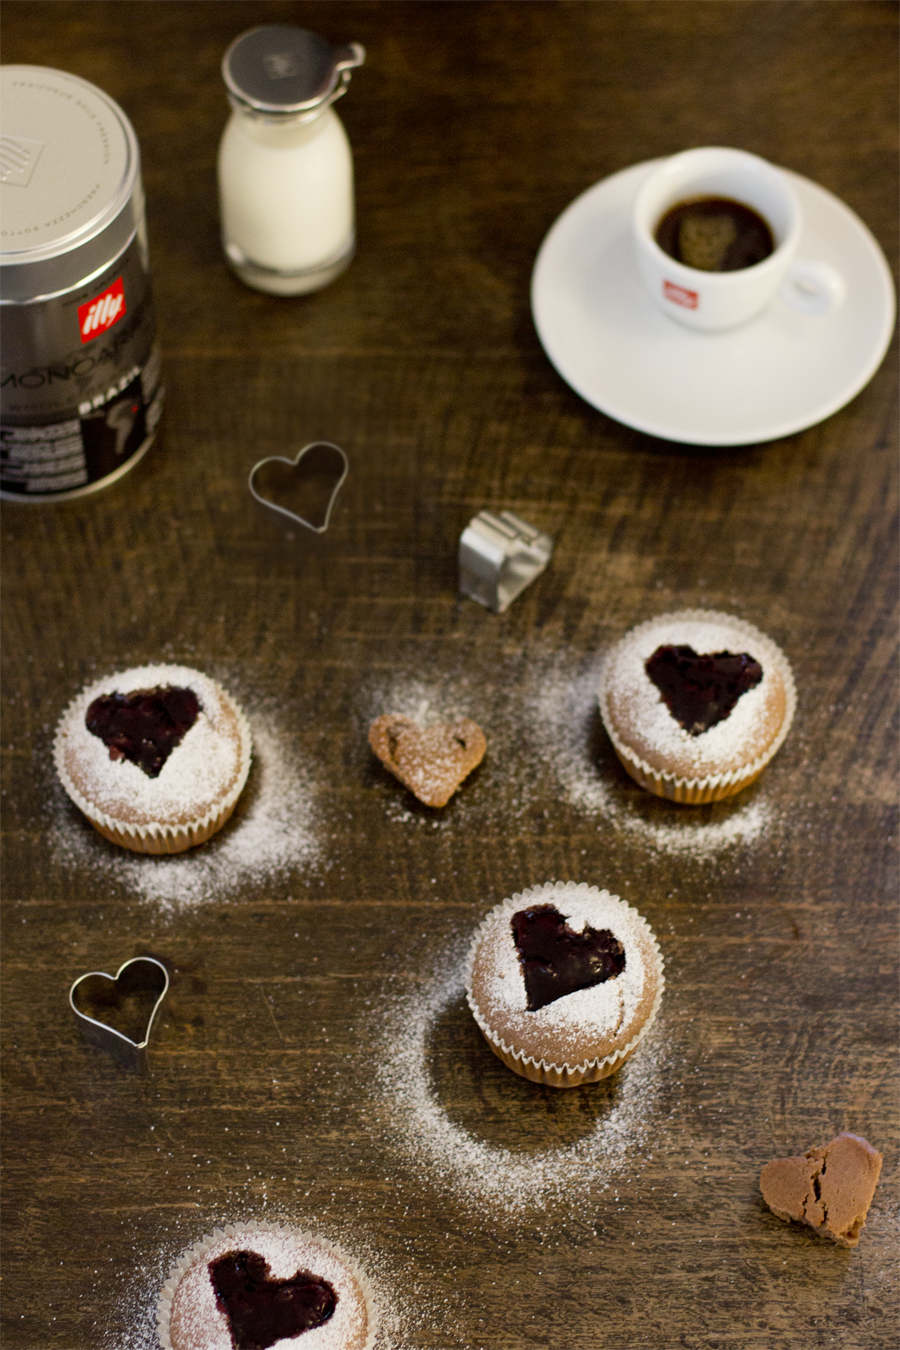 Coffee muffins with cherry filling for Valentine's Day | LOOK WHAT I MADE ...